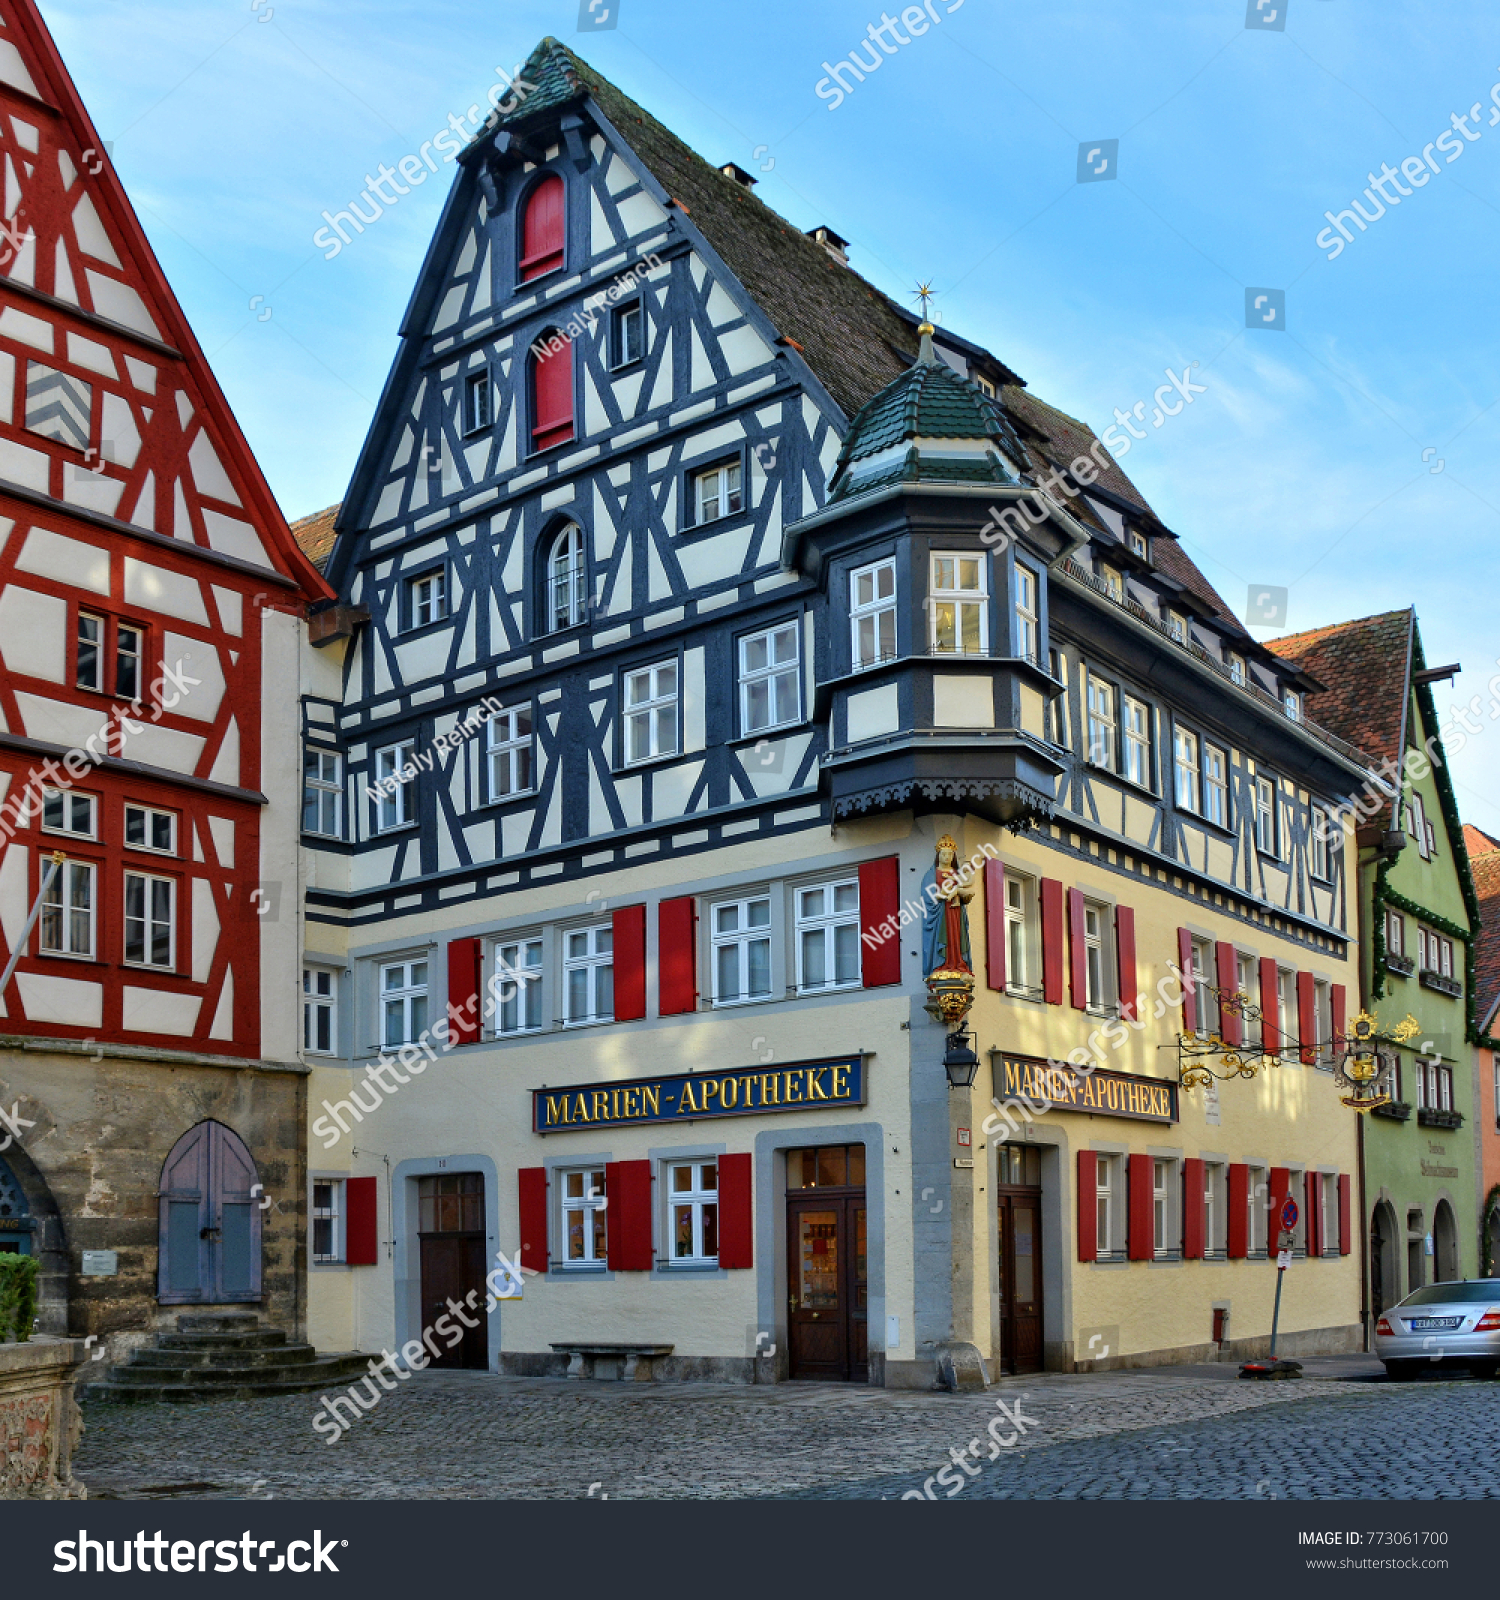 German Architecture And Art Ancient Half Timbered Houses In A Medieval Old Town